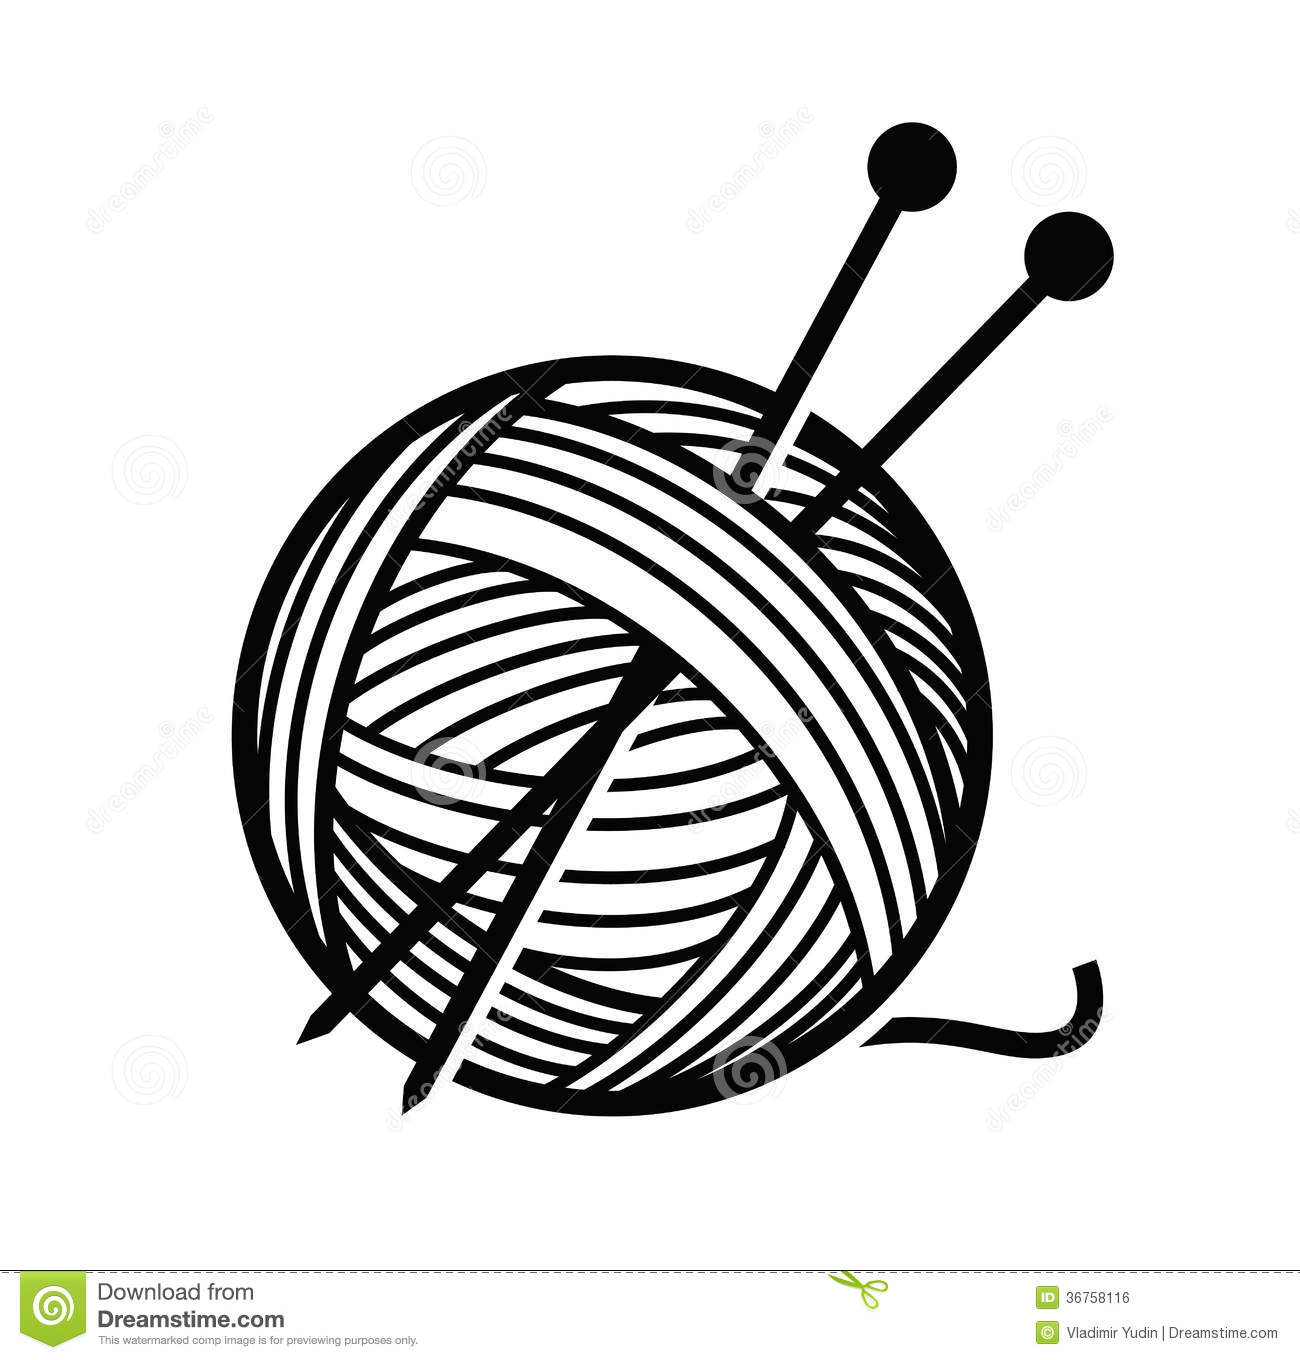 Yarn and needles stock vector. Illustration of concept